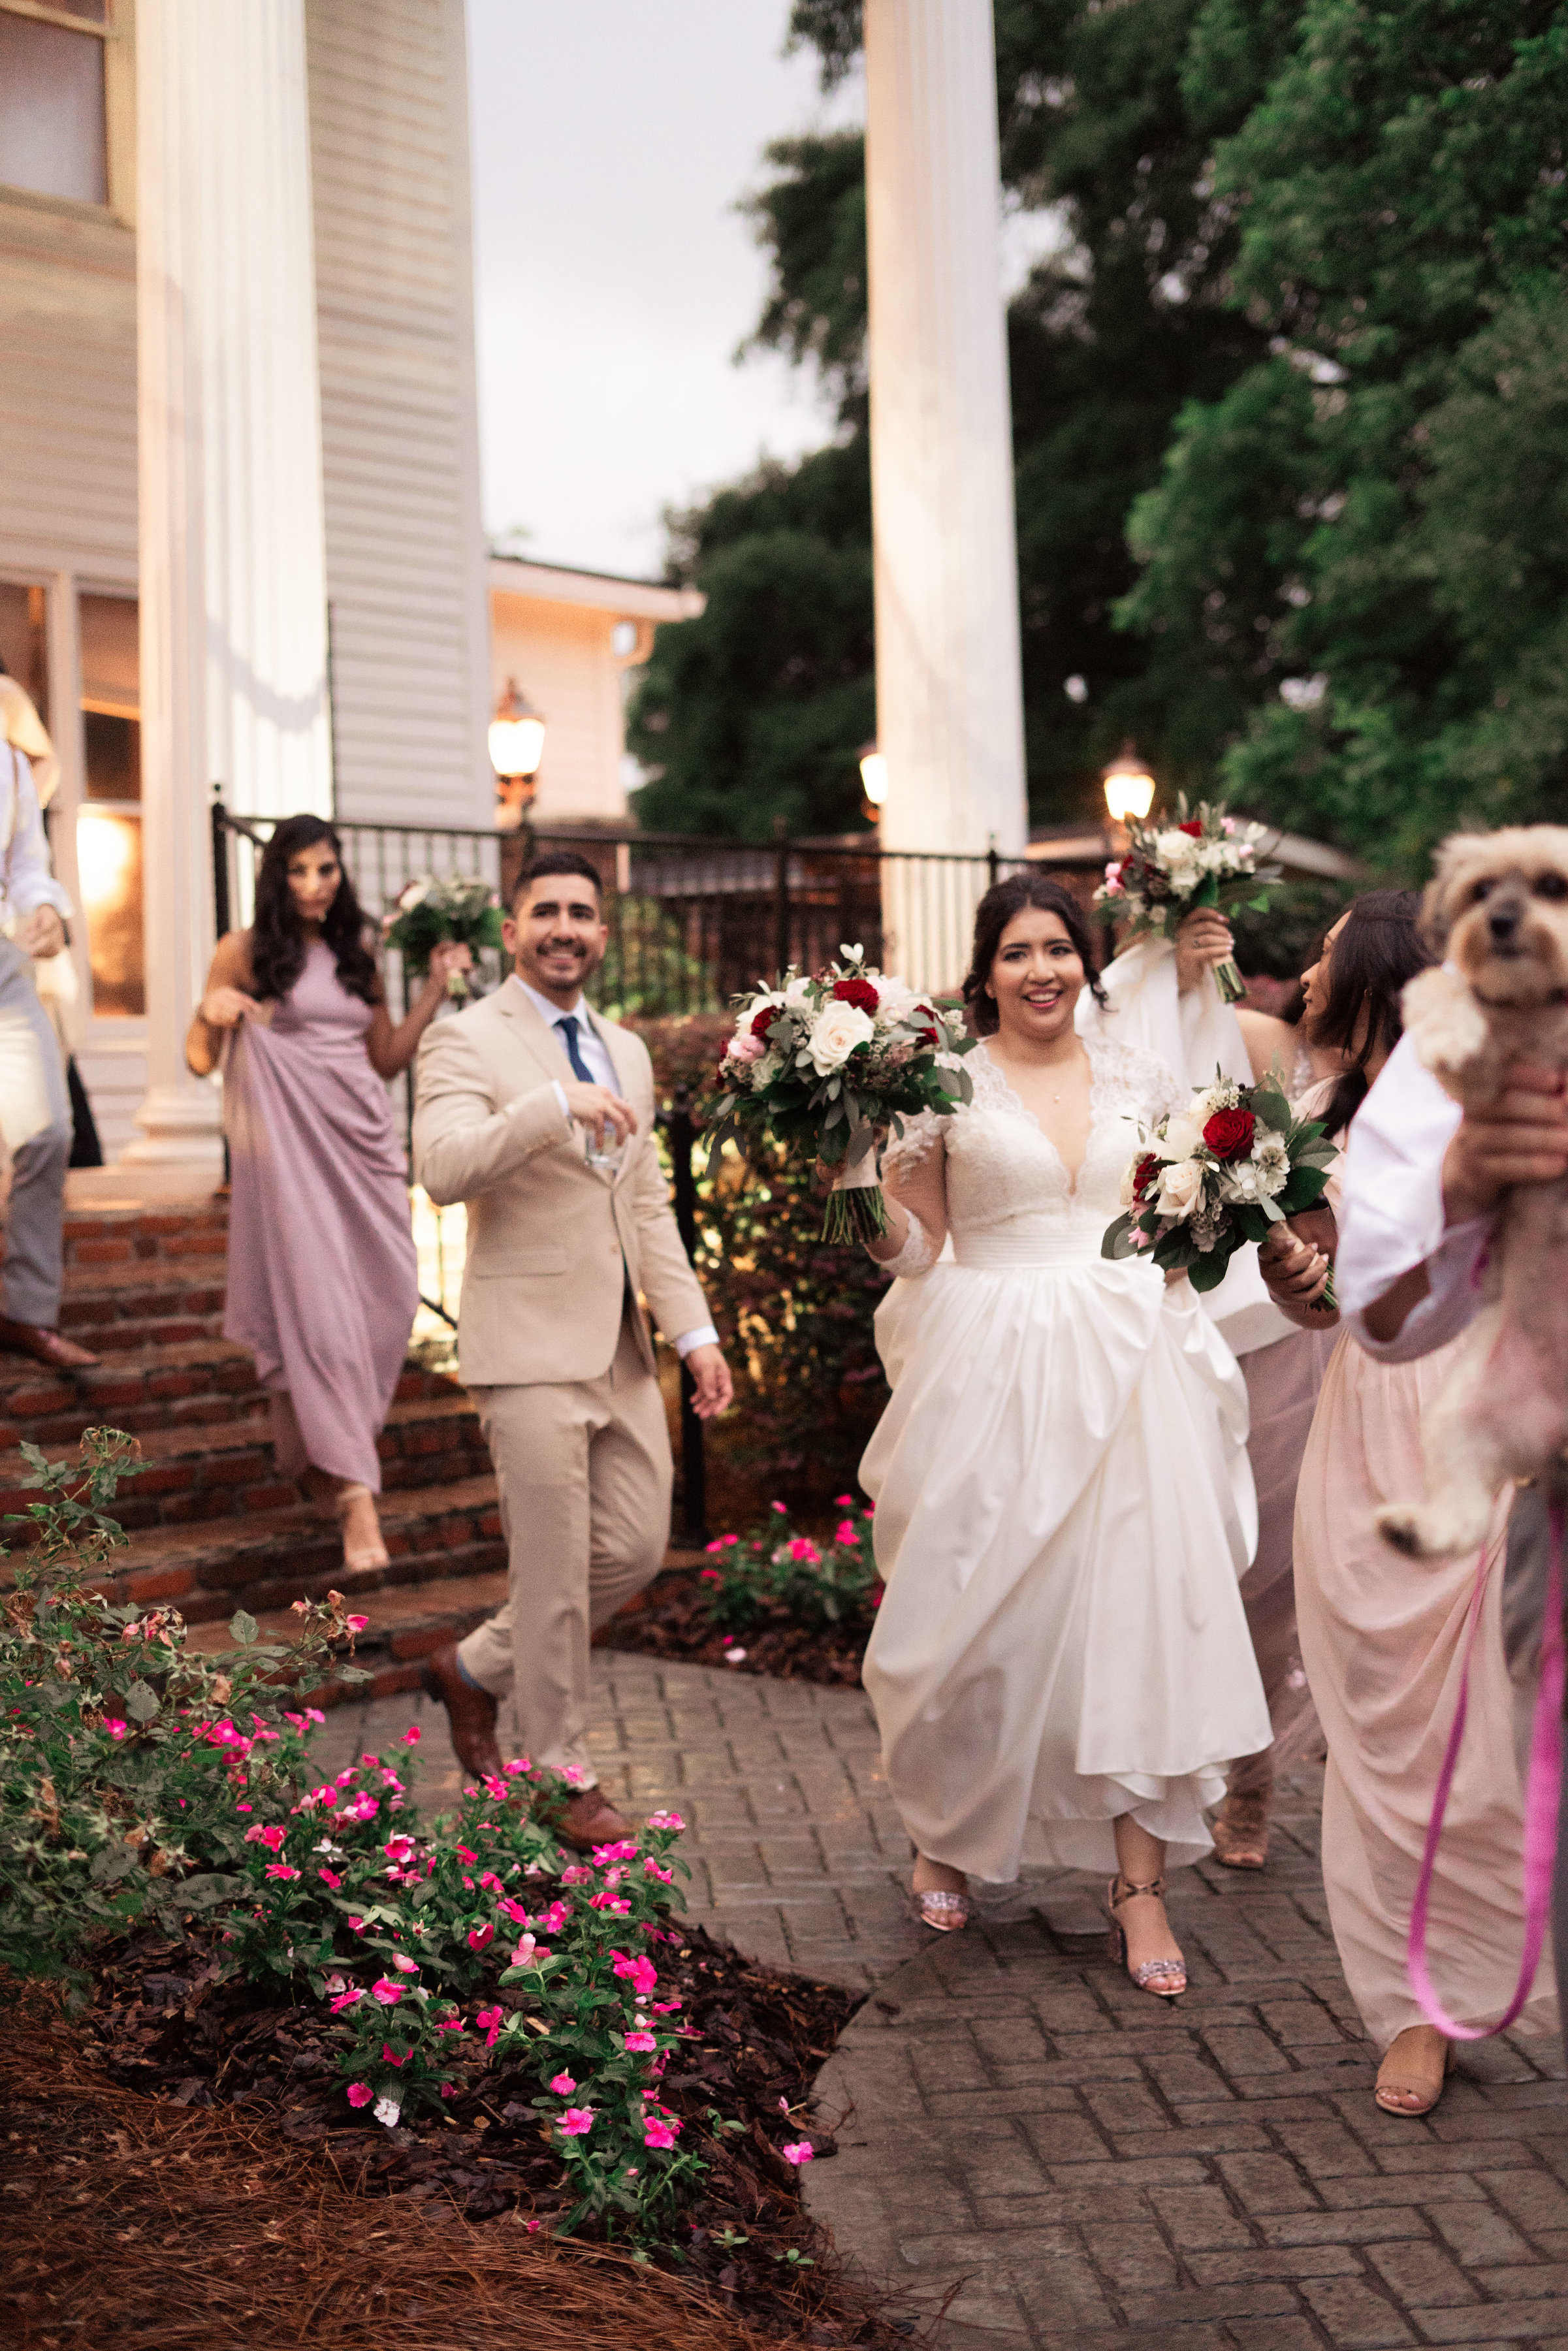 Bridal Party On Their Way To The Ceremony Chapel